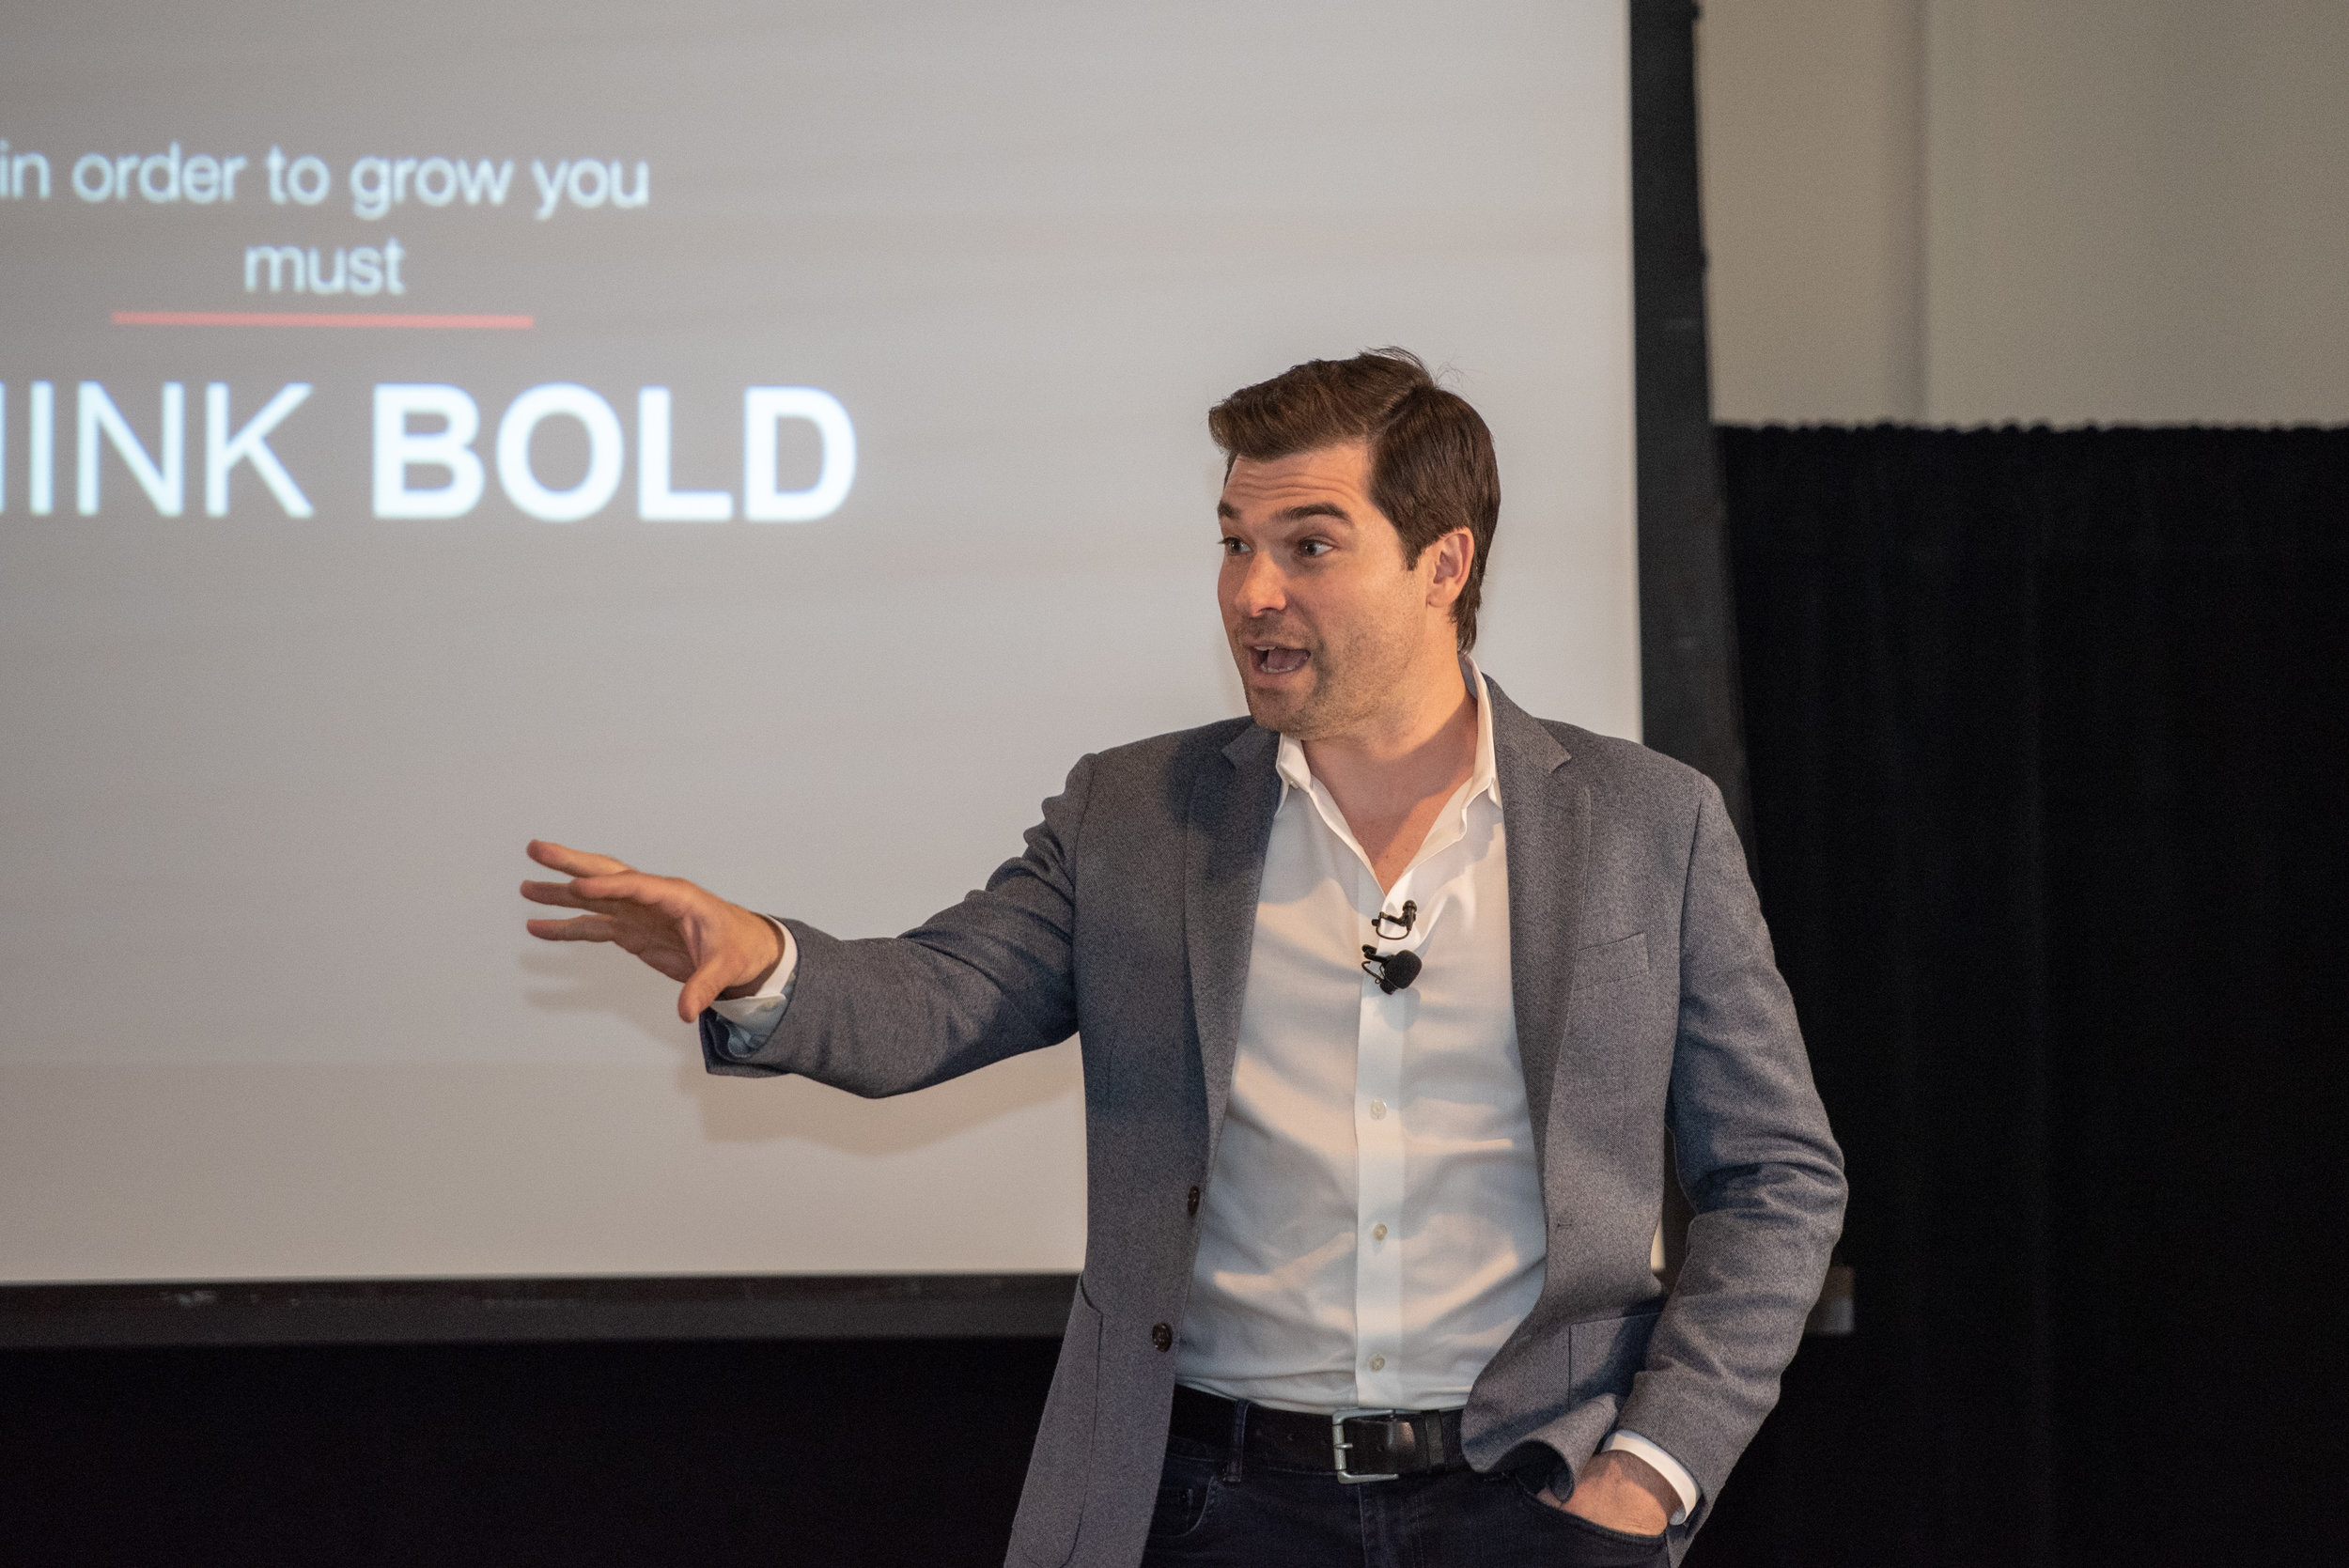 Brian Cristiano - Be BOLD, even in your darkest hour